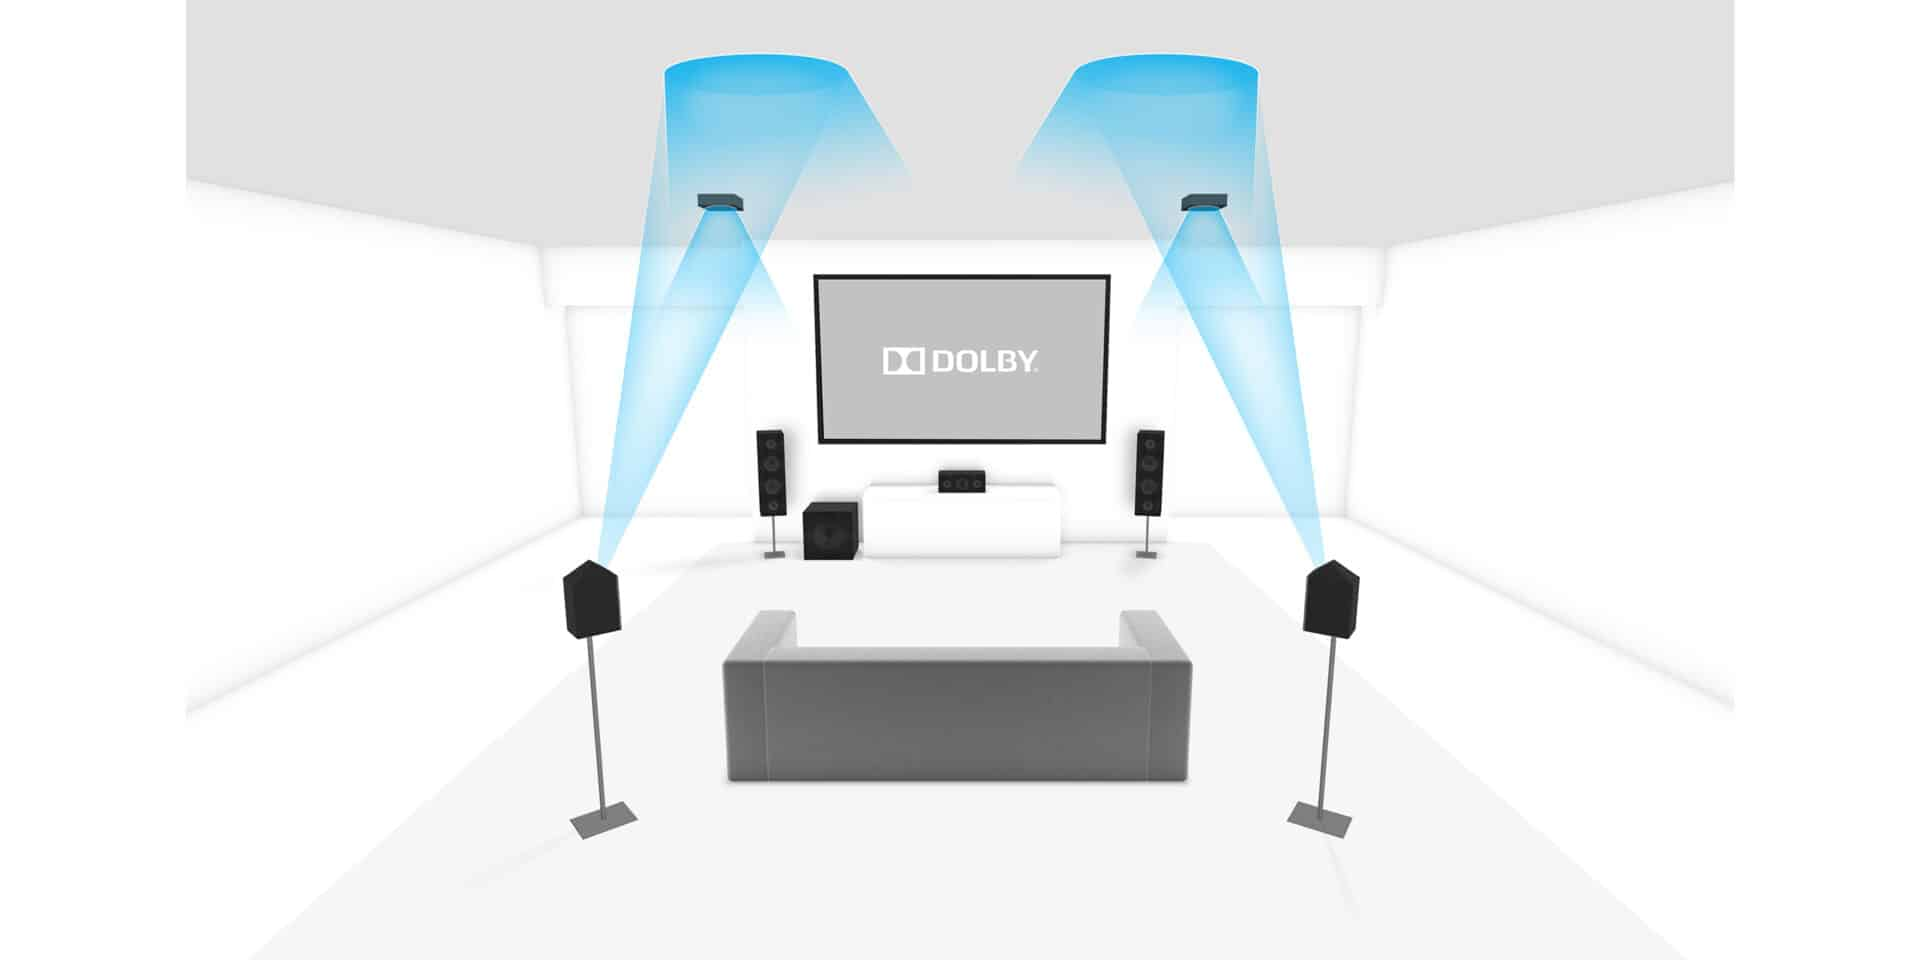 Dolby Atmos Height Up-firing Speakers for Home Theatre in Lounge Room